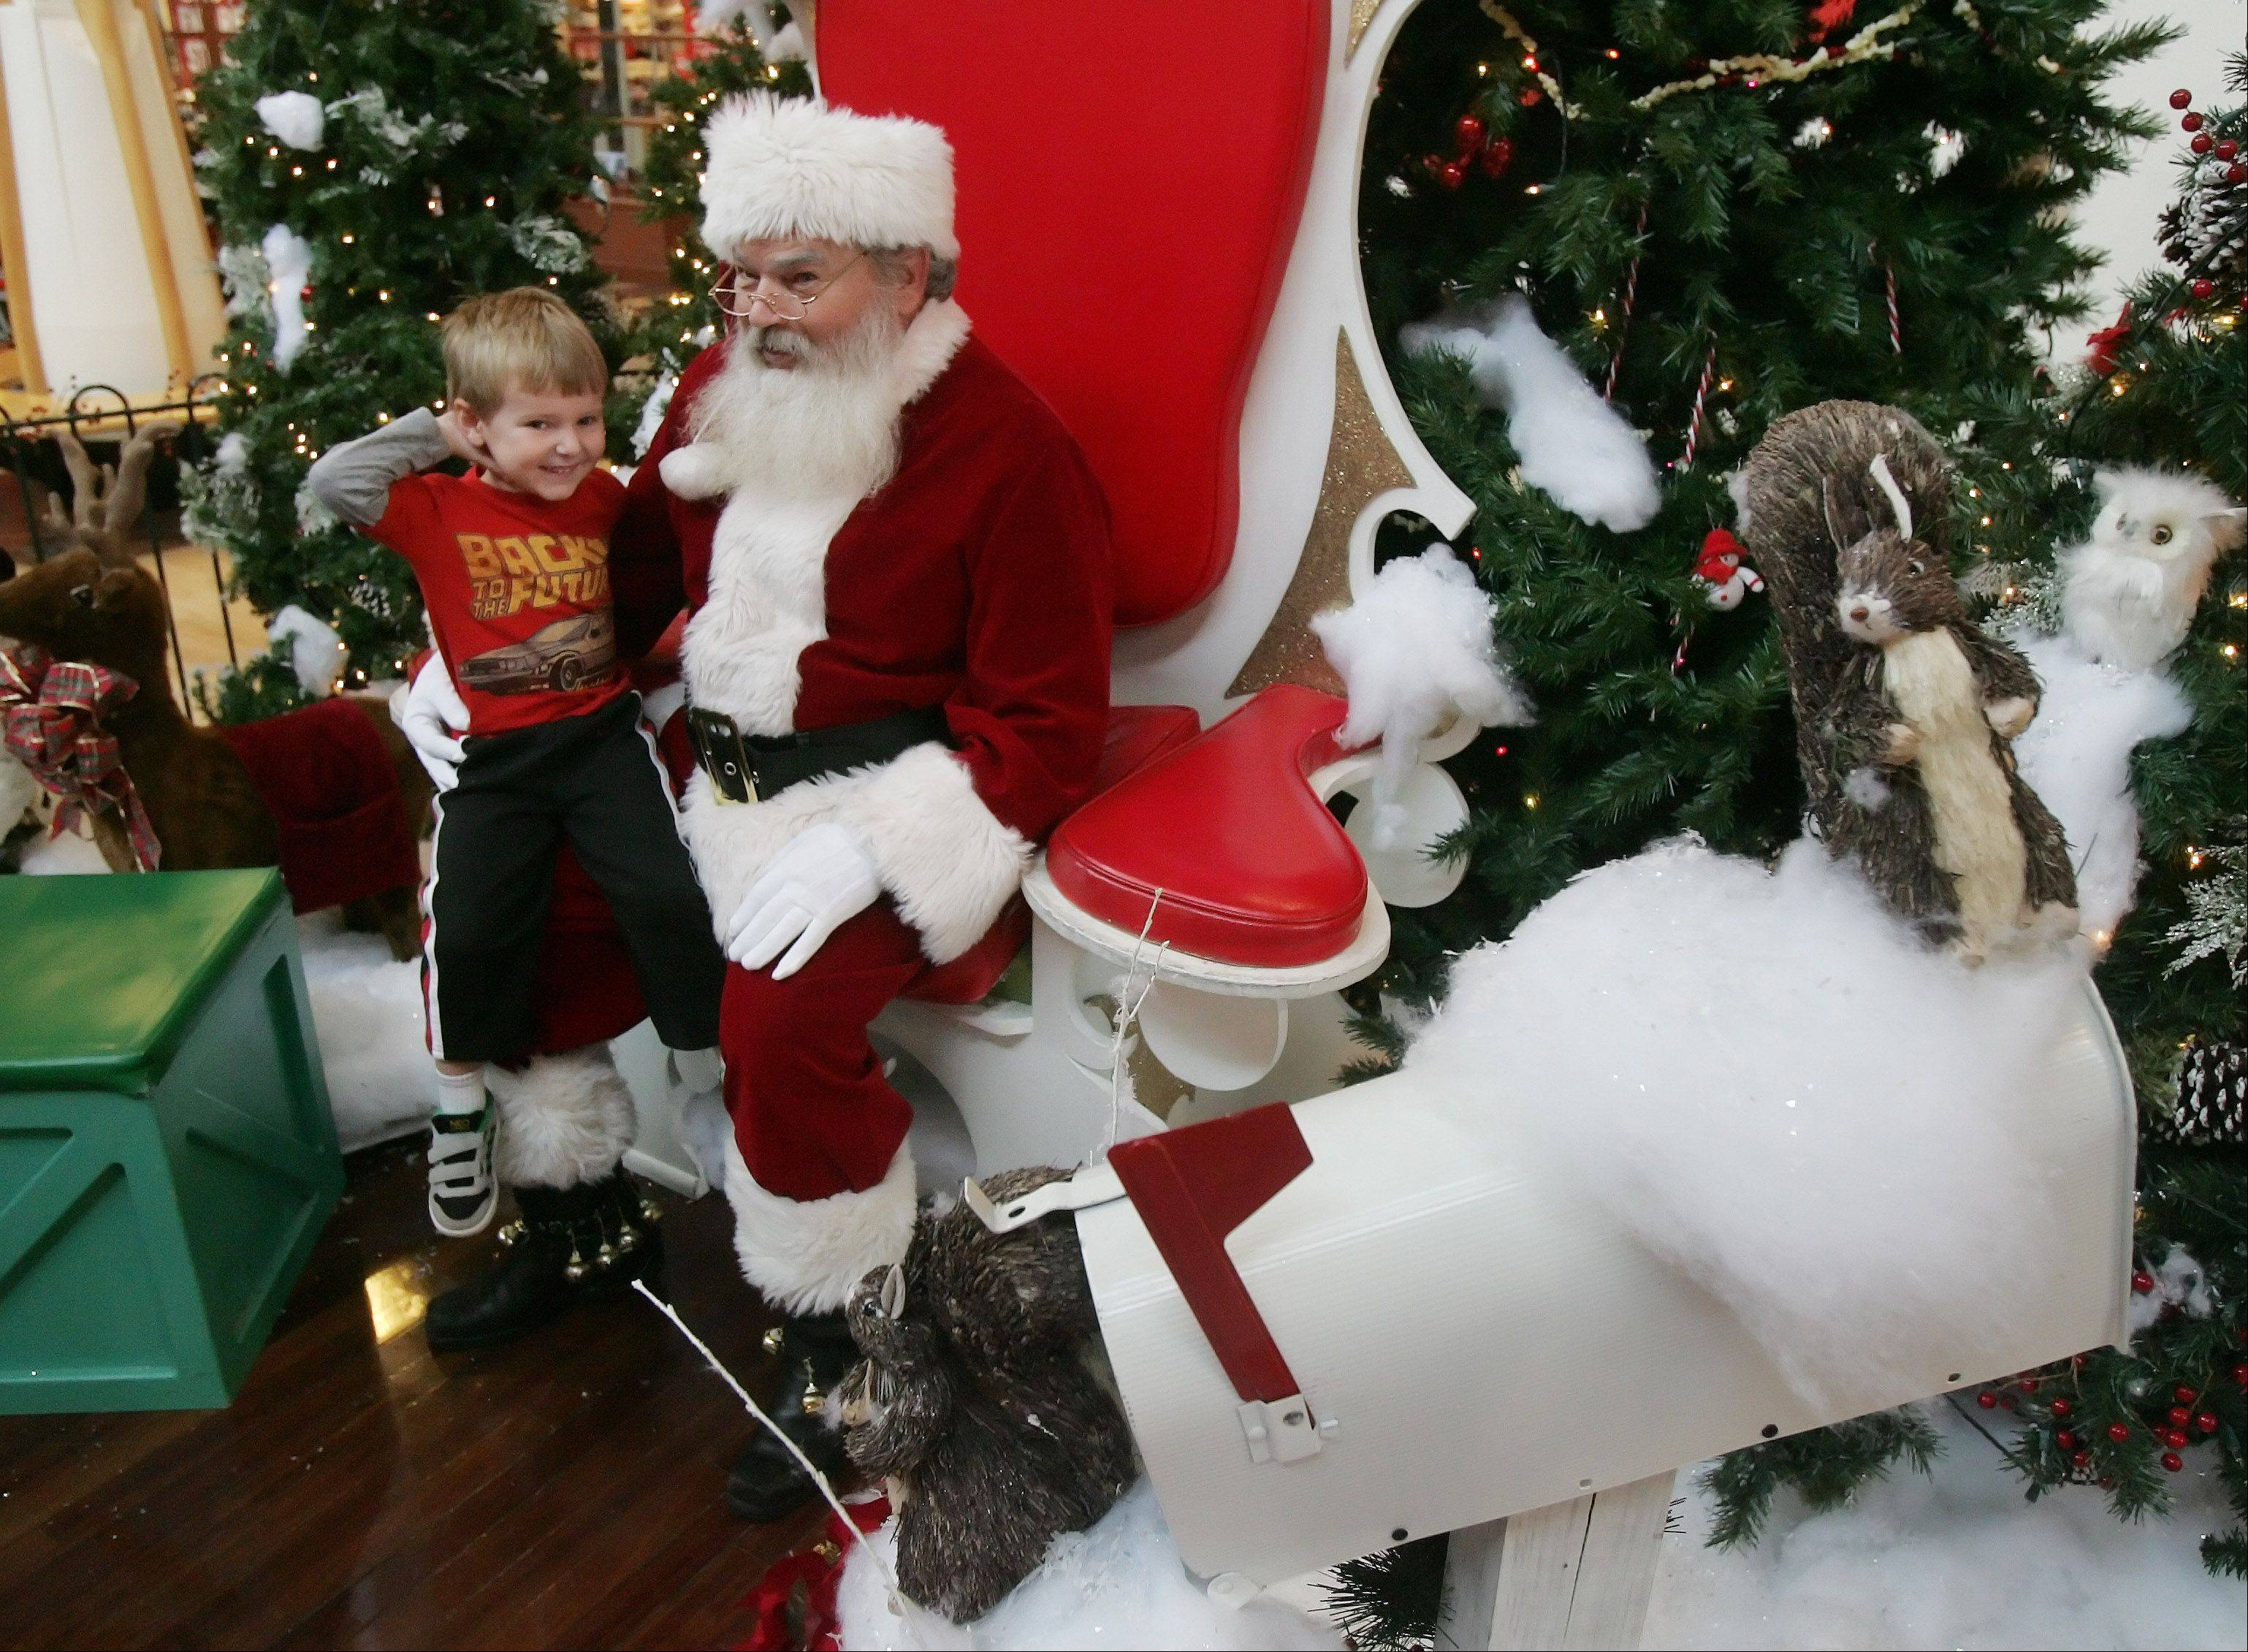 Three-year-old Nathan Likosar, of Green Oaks, tells Santa Claus what he wanted for Christmas after Santa arrived at Gurnee Mills Thursday. Kids can visit Santa Monday through Saturday from 10 a.m. to 9 p.m. and Sundays from 11 a.m. to 7 p.m.